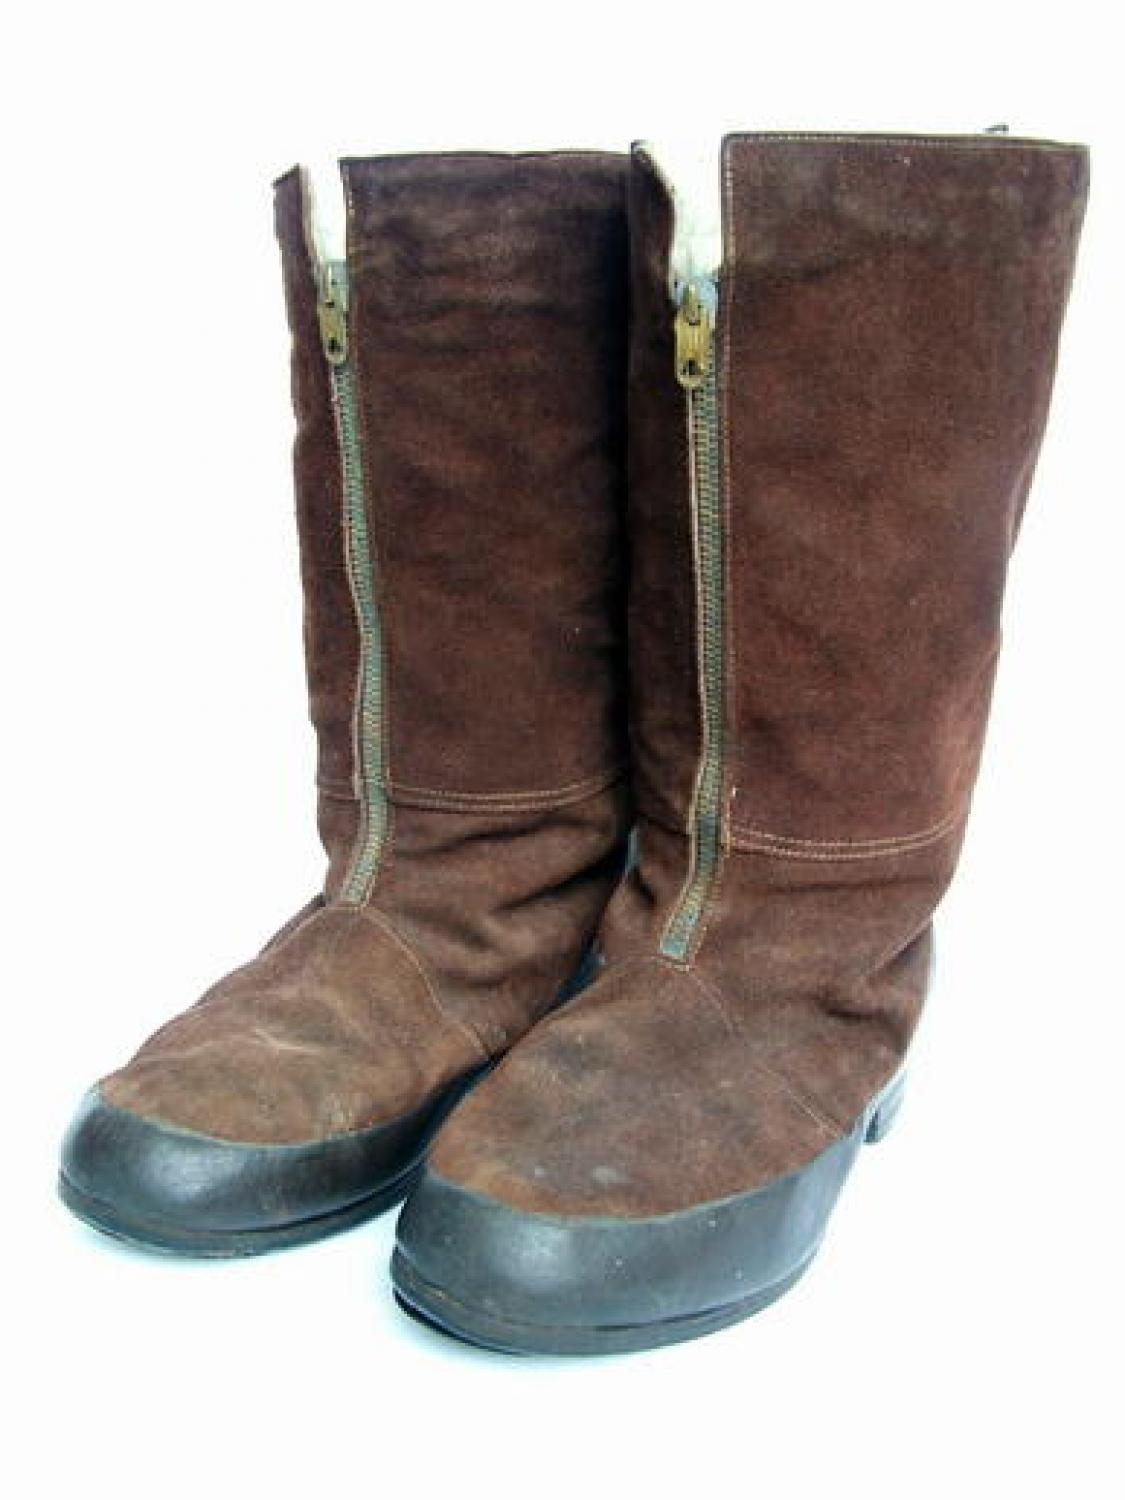 R.A.F. 1940 Pattern Flying Boots